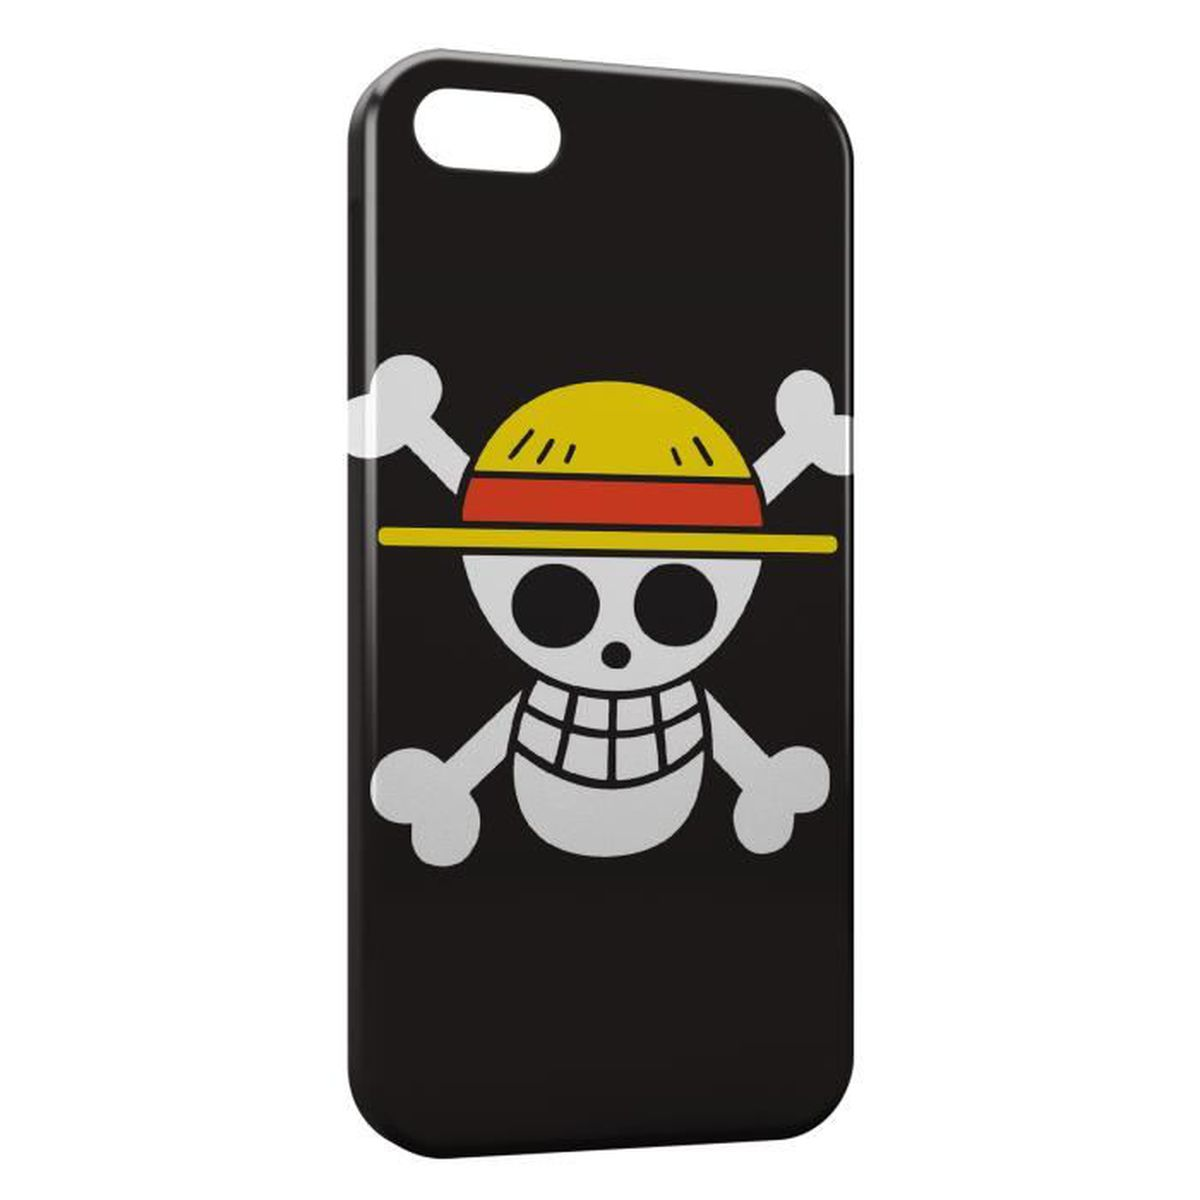 coque iphone 6 one piece manga 17